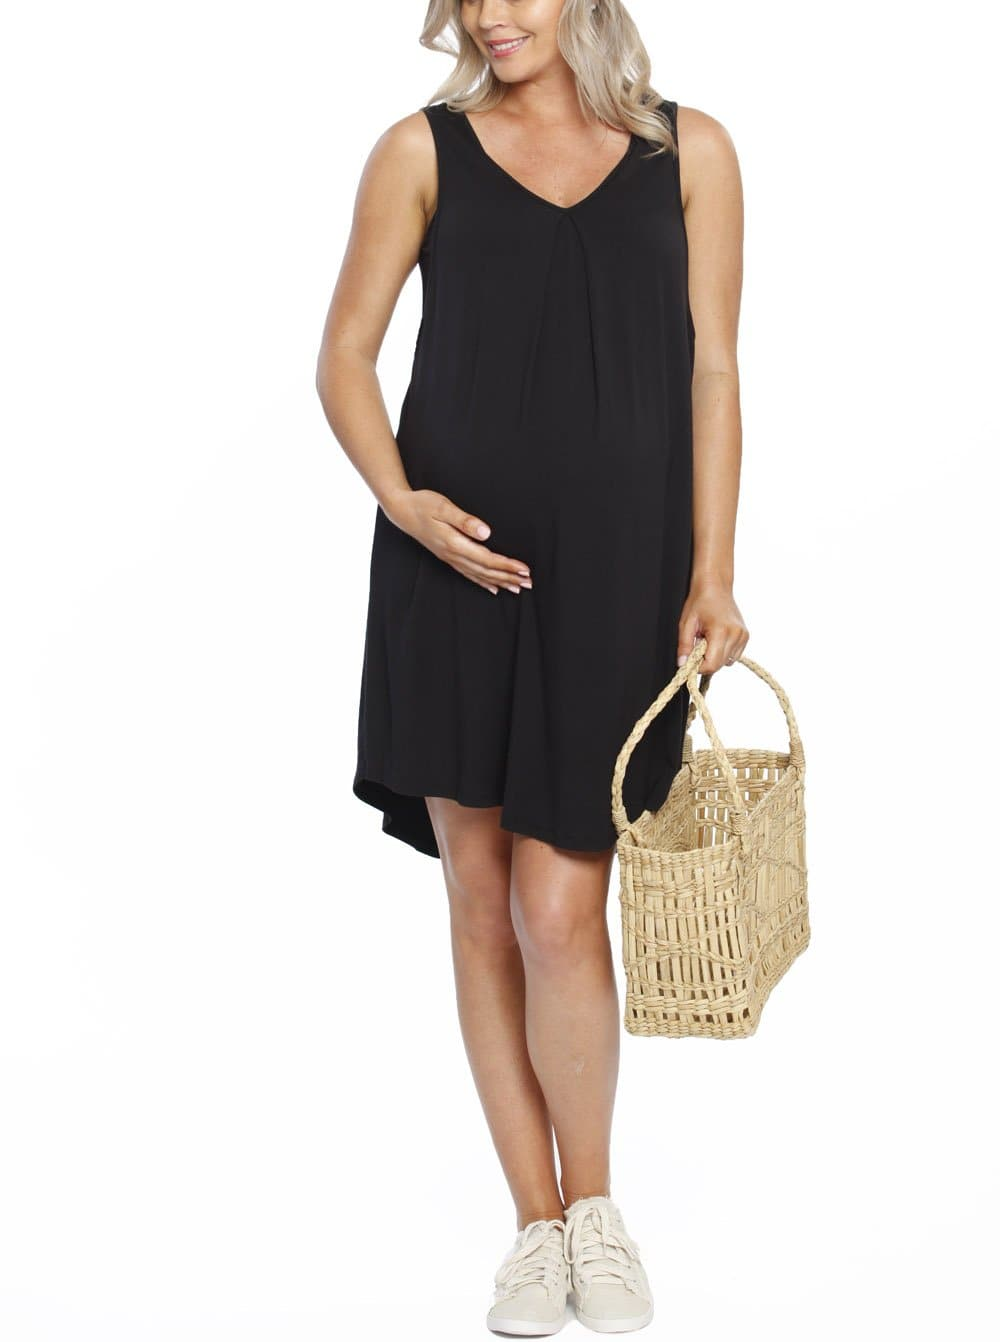 Maternity Swing Dress with Nursing Opening in Black - Australia Maternity online store